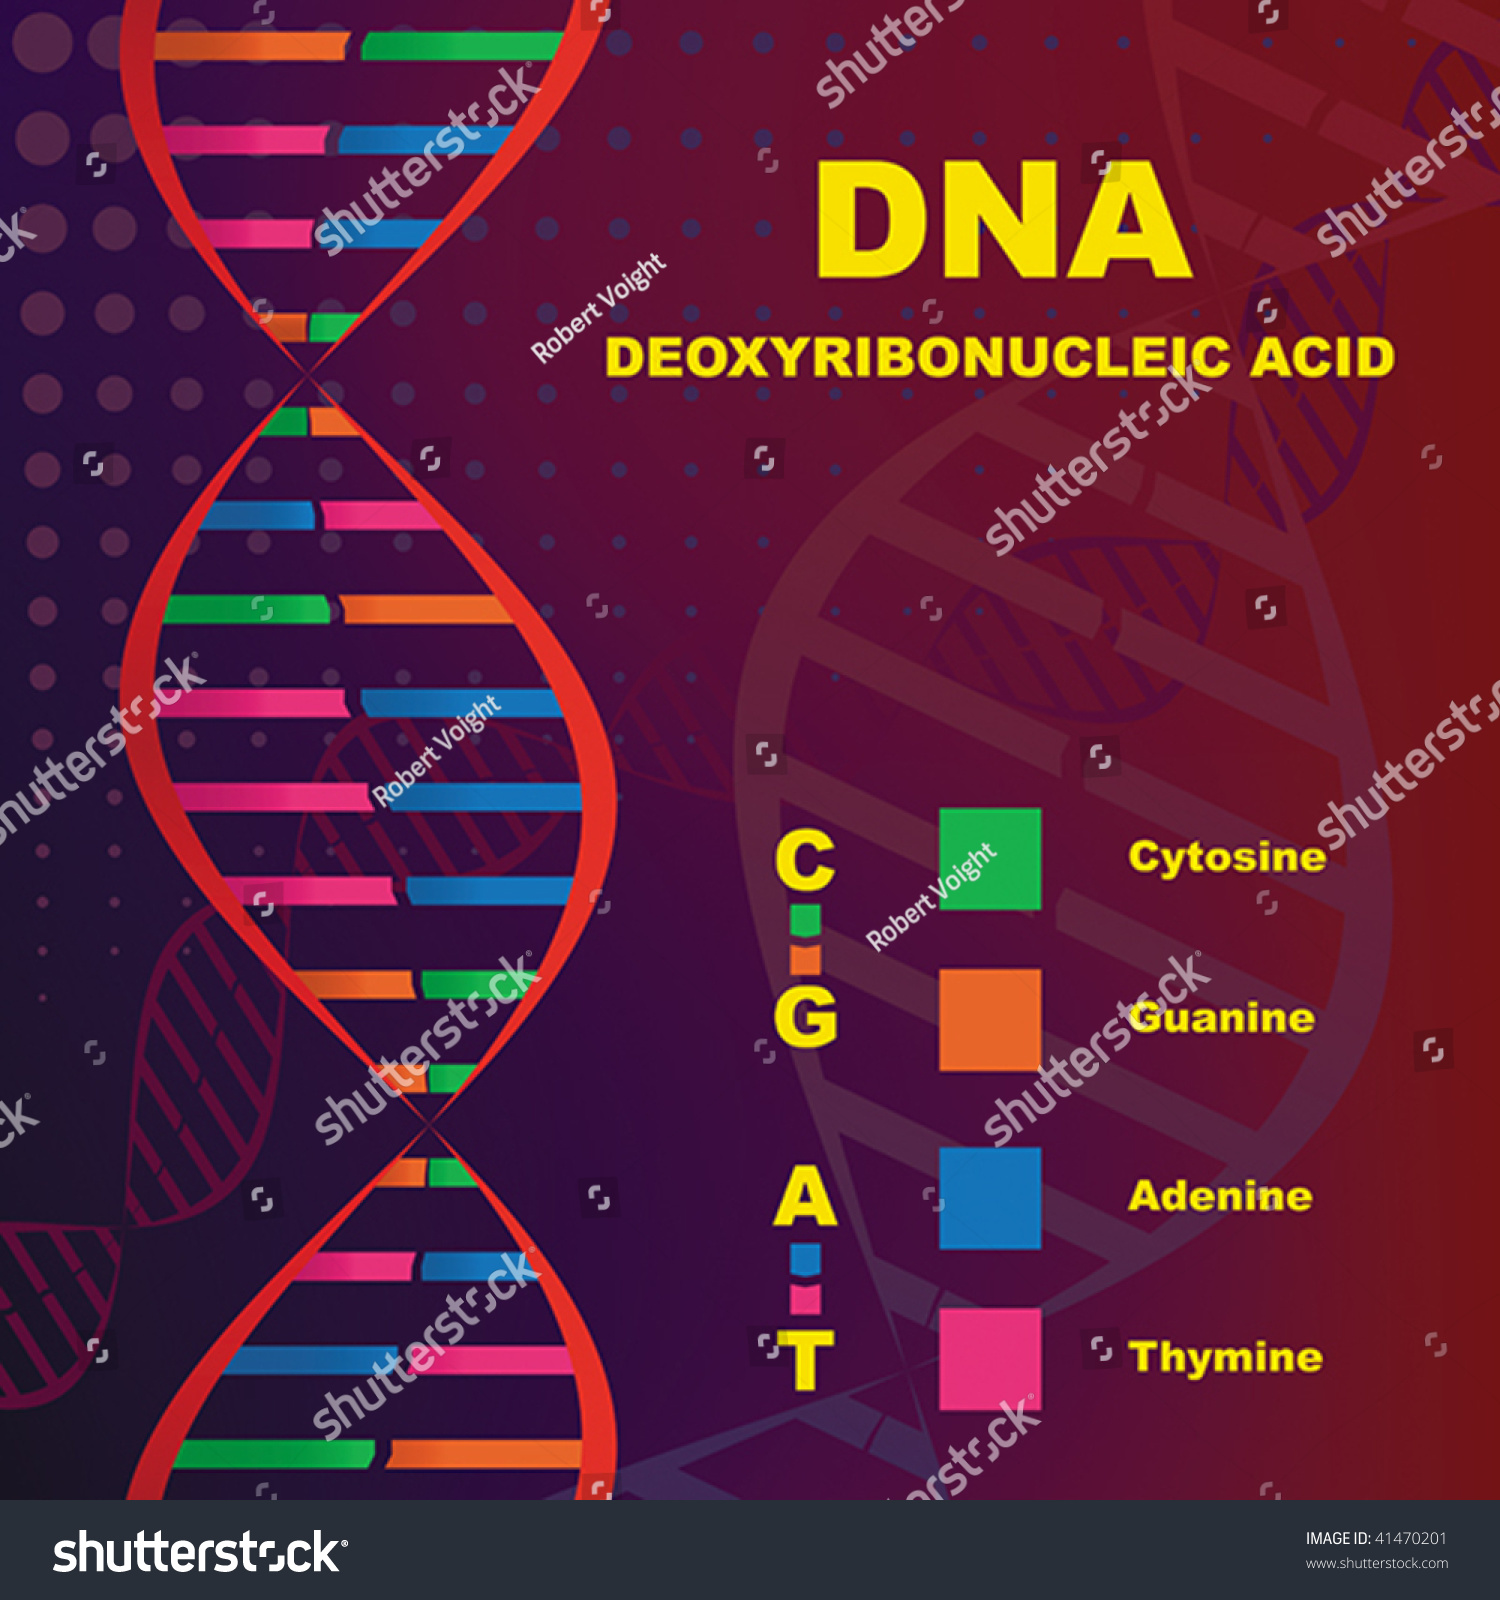 an introduction to dna or deoxyribonucleic acid Dna – an introduction, the open university, biology, itunes u,  deoxyribonucleic acid, or dna, has fascinated and excited scientists for over 140 years.